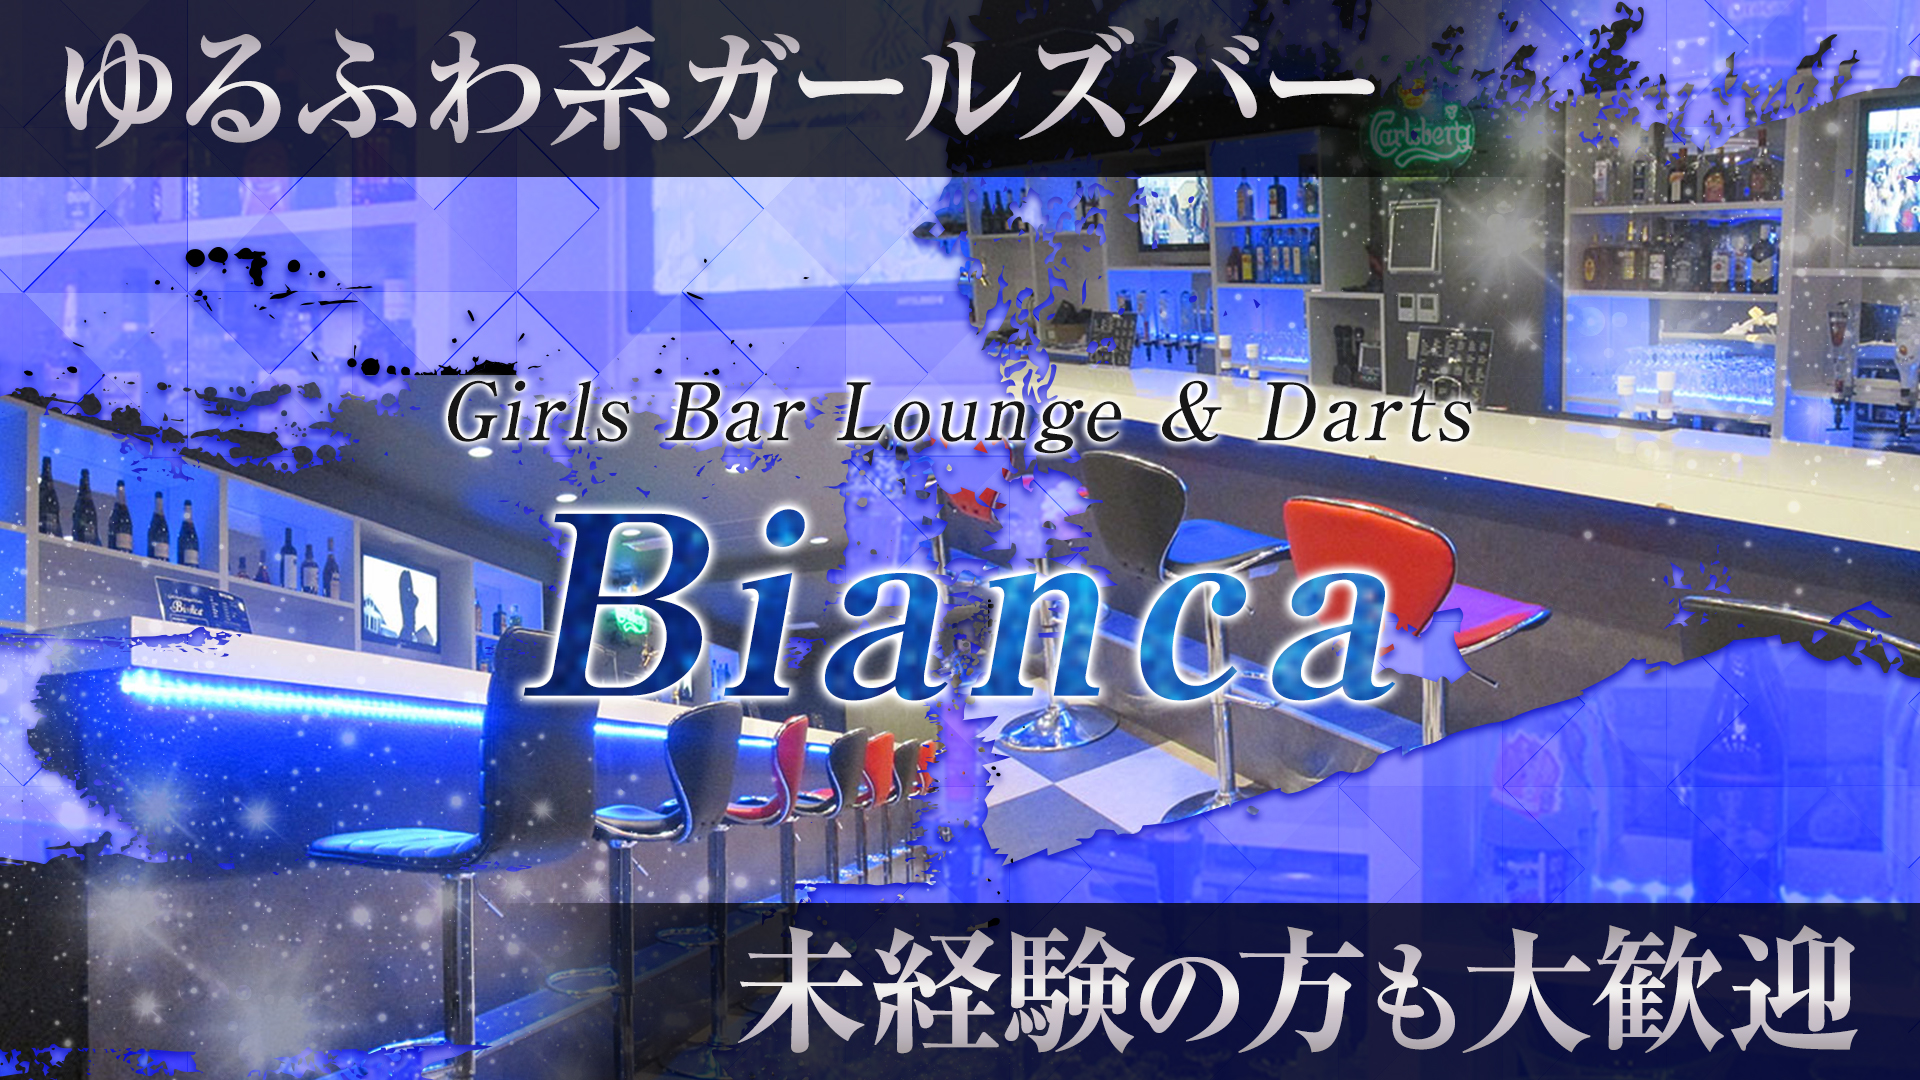 Girls Bar Lounge & Darts -Bianca-<ビアンカ> 川崎 ガールズバー TOP画像